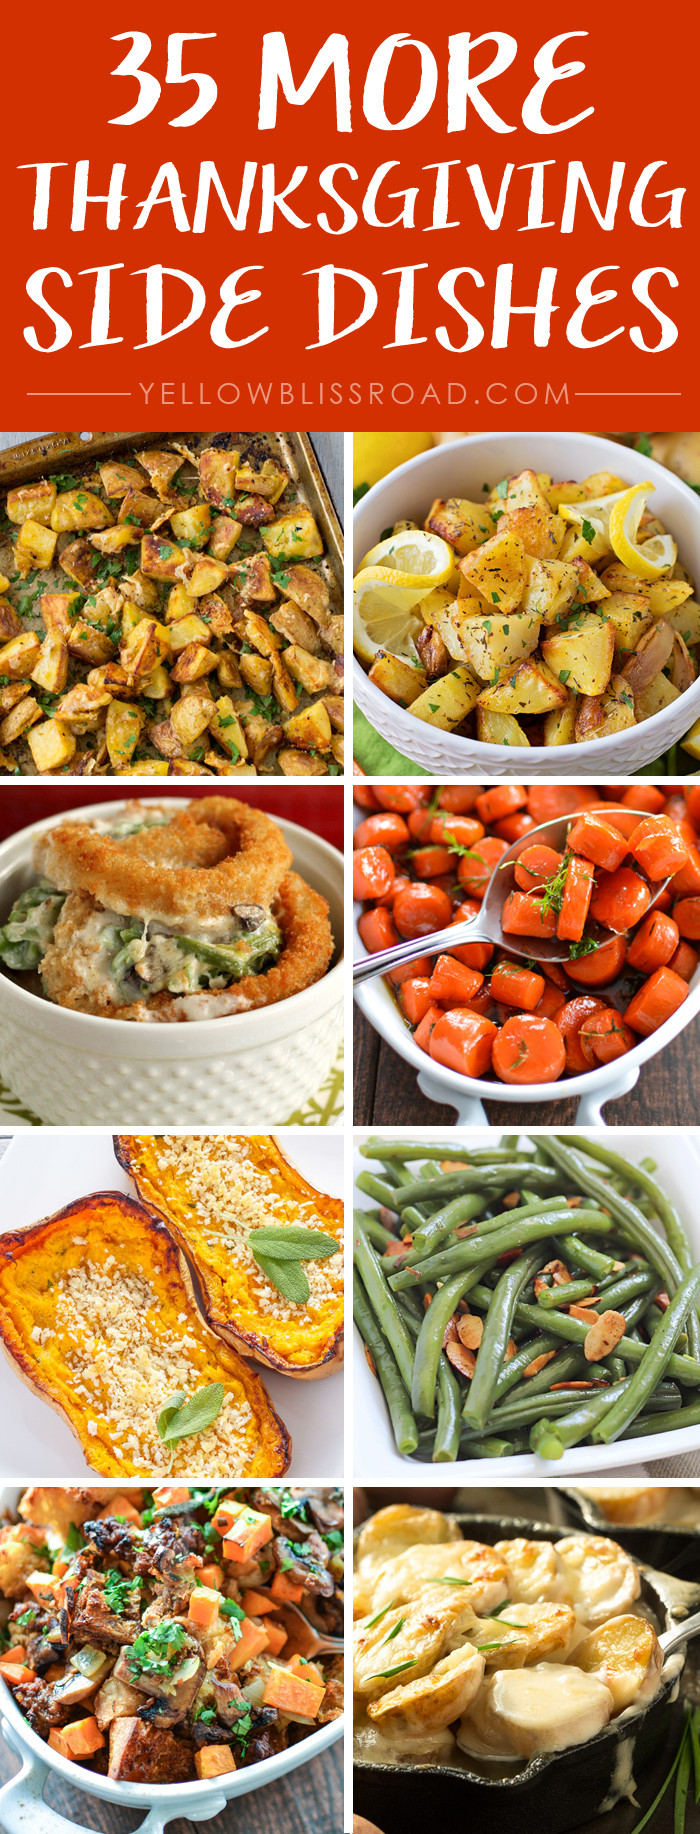 Side Dishes For Thanksgiving  Twice Baked Potato Casserole with Potato Chip Crust